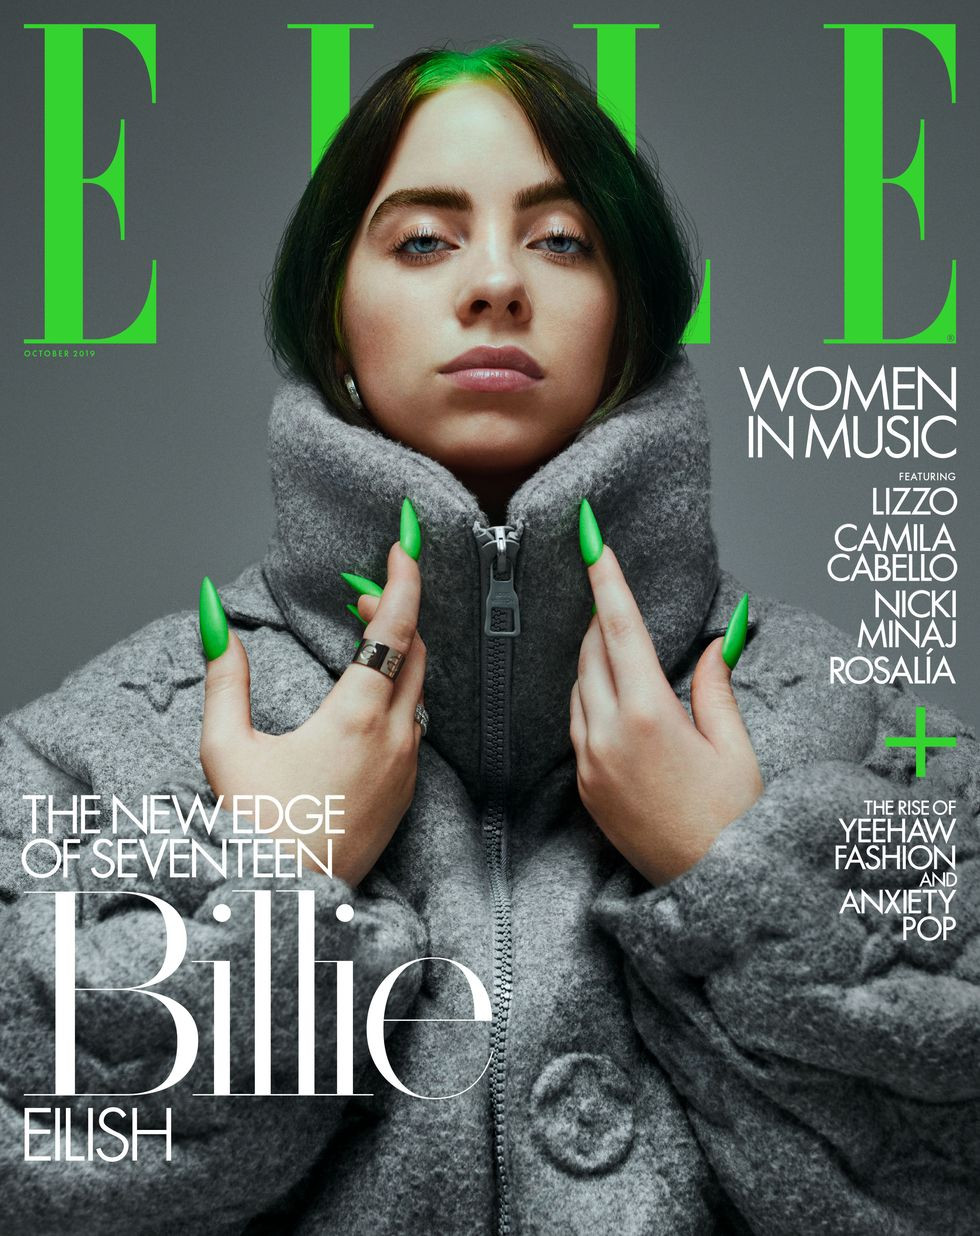 Billie Eilish cover assistant styled by Christina